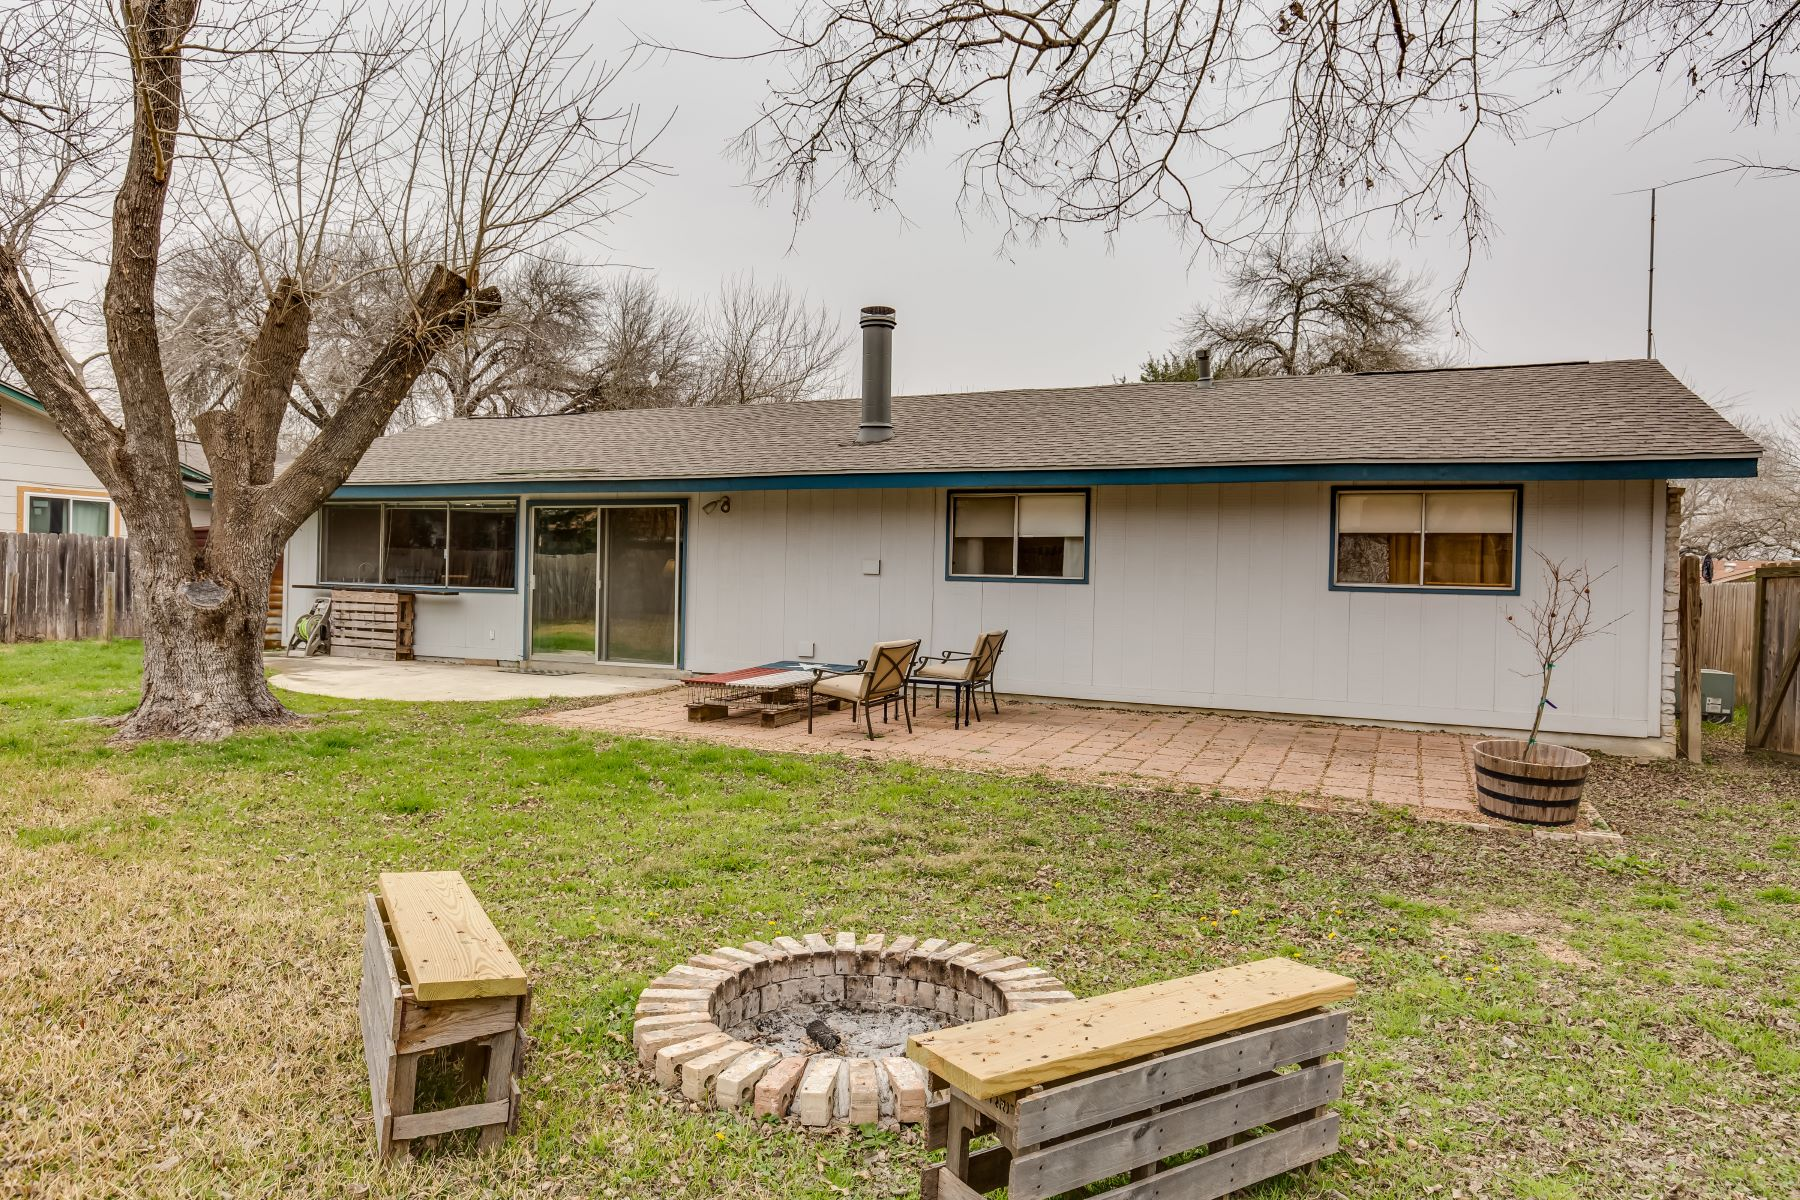 Additional photo for property listing at Single Story, Cul-De-Sac Home 8107 Cedar Forest San Antonio, Texas 78239 United States